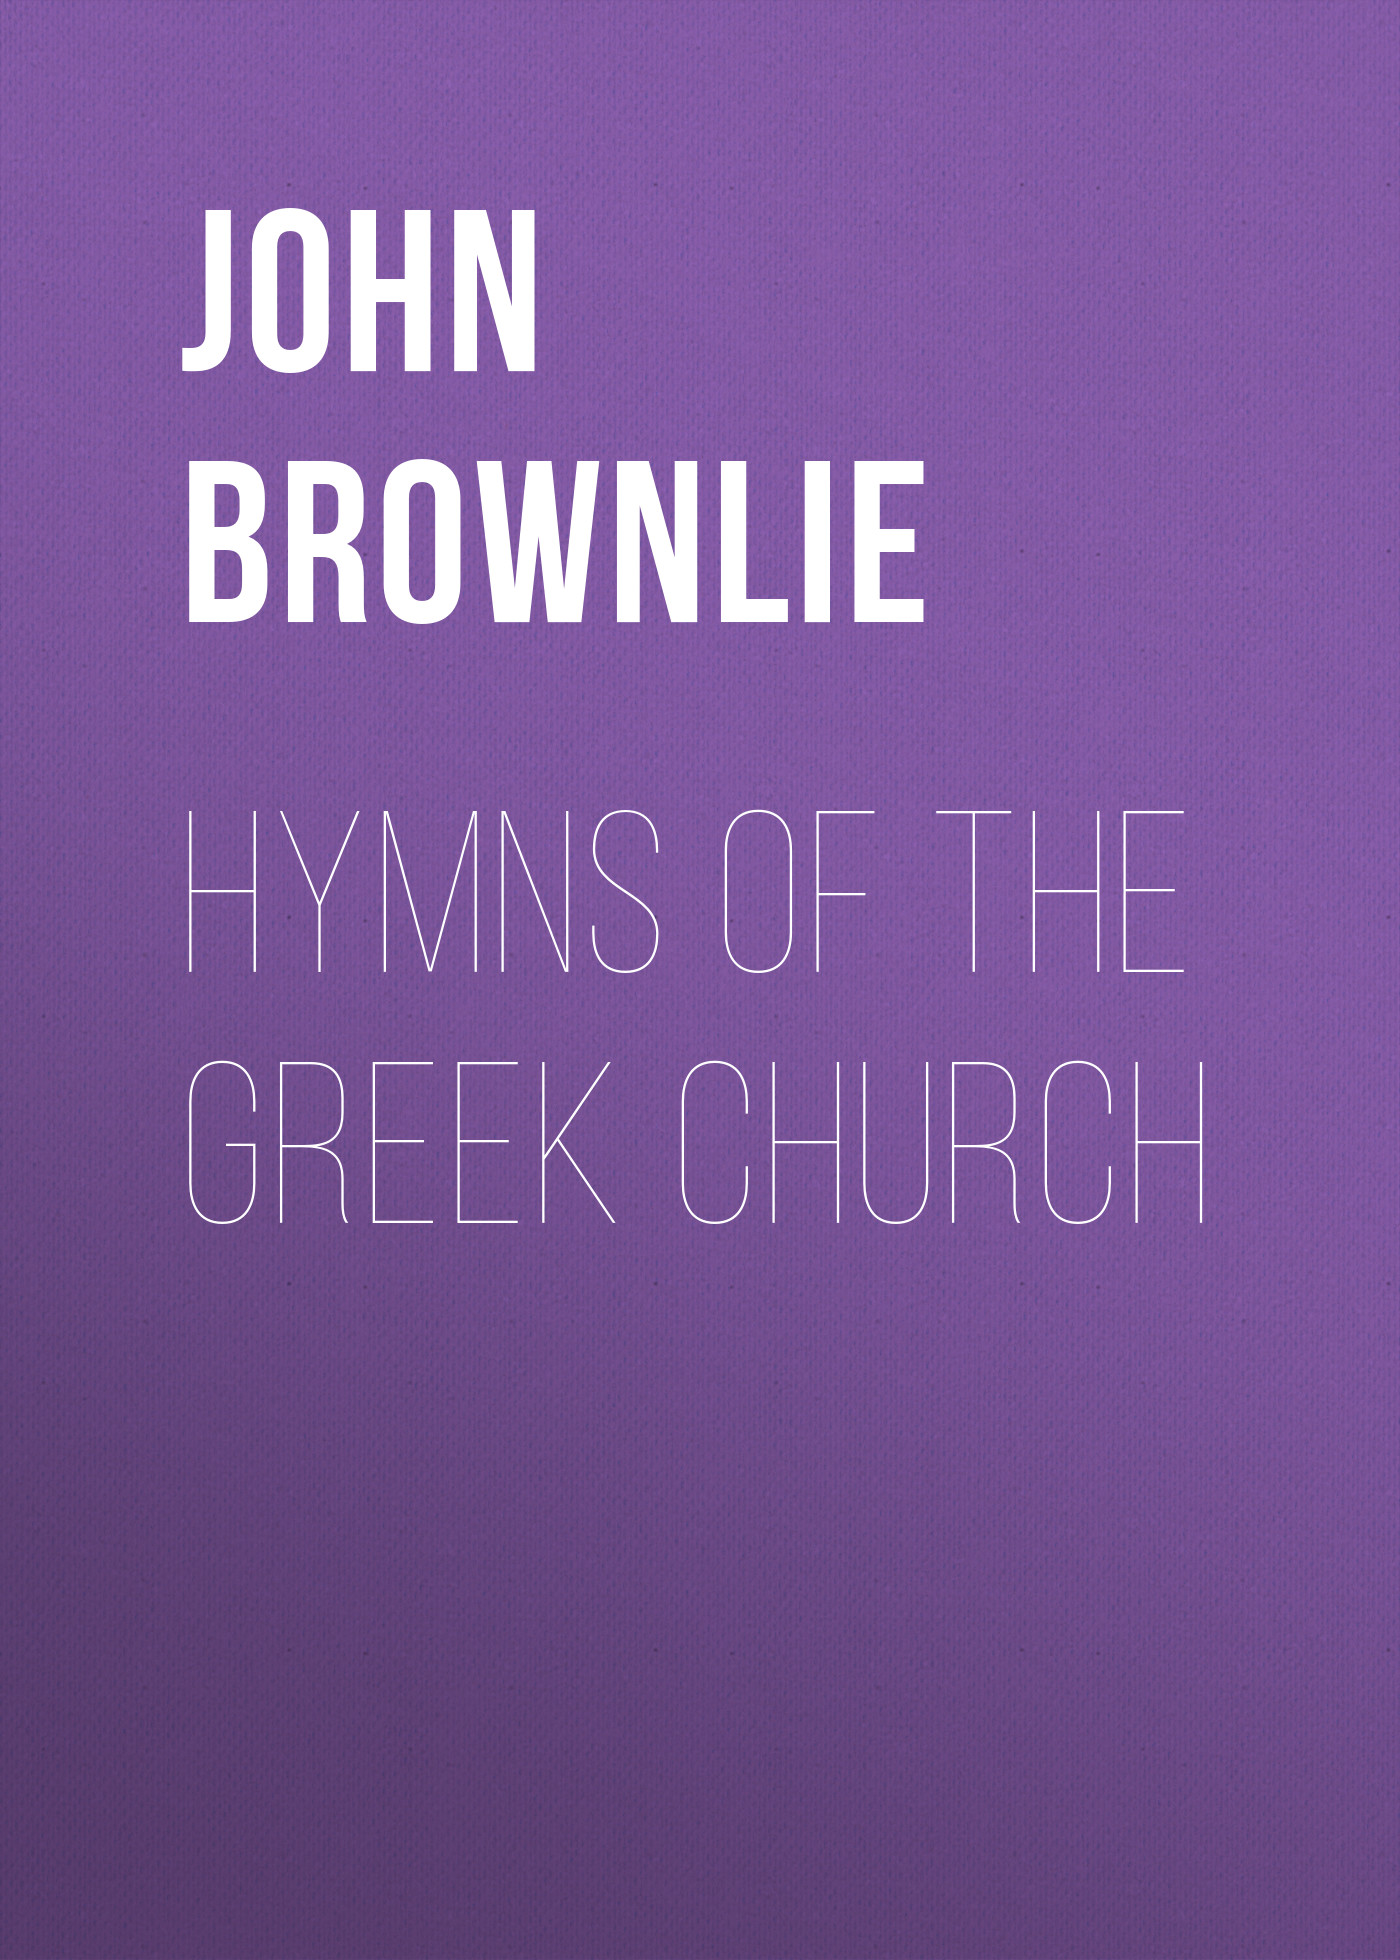 John Brownlie Hymns of the Greek Church